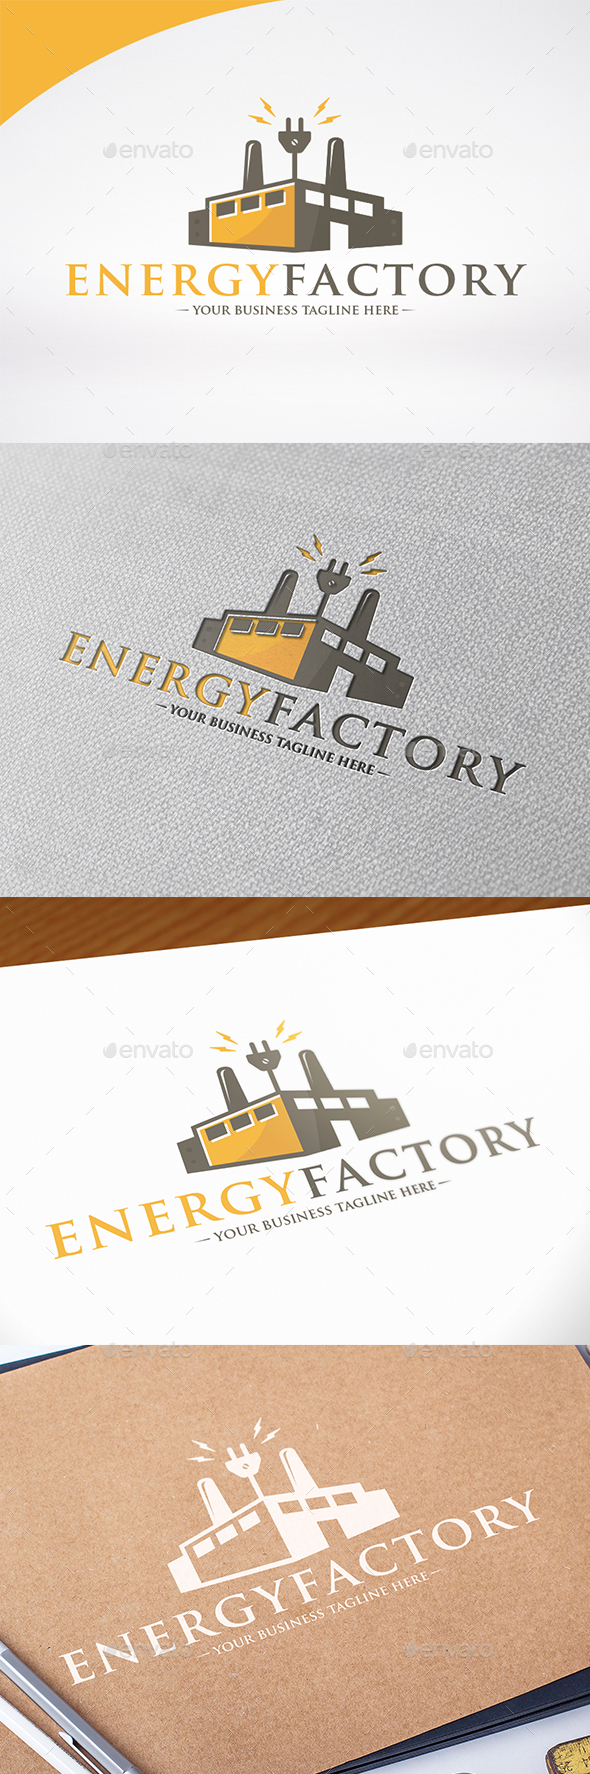 Electric Factory Logo Template - Buildings Logo Templates